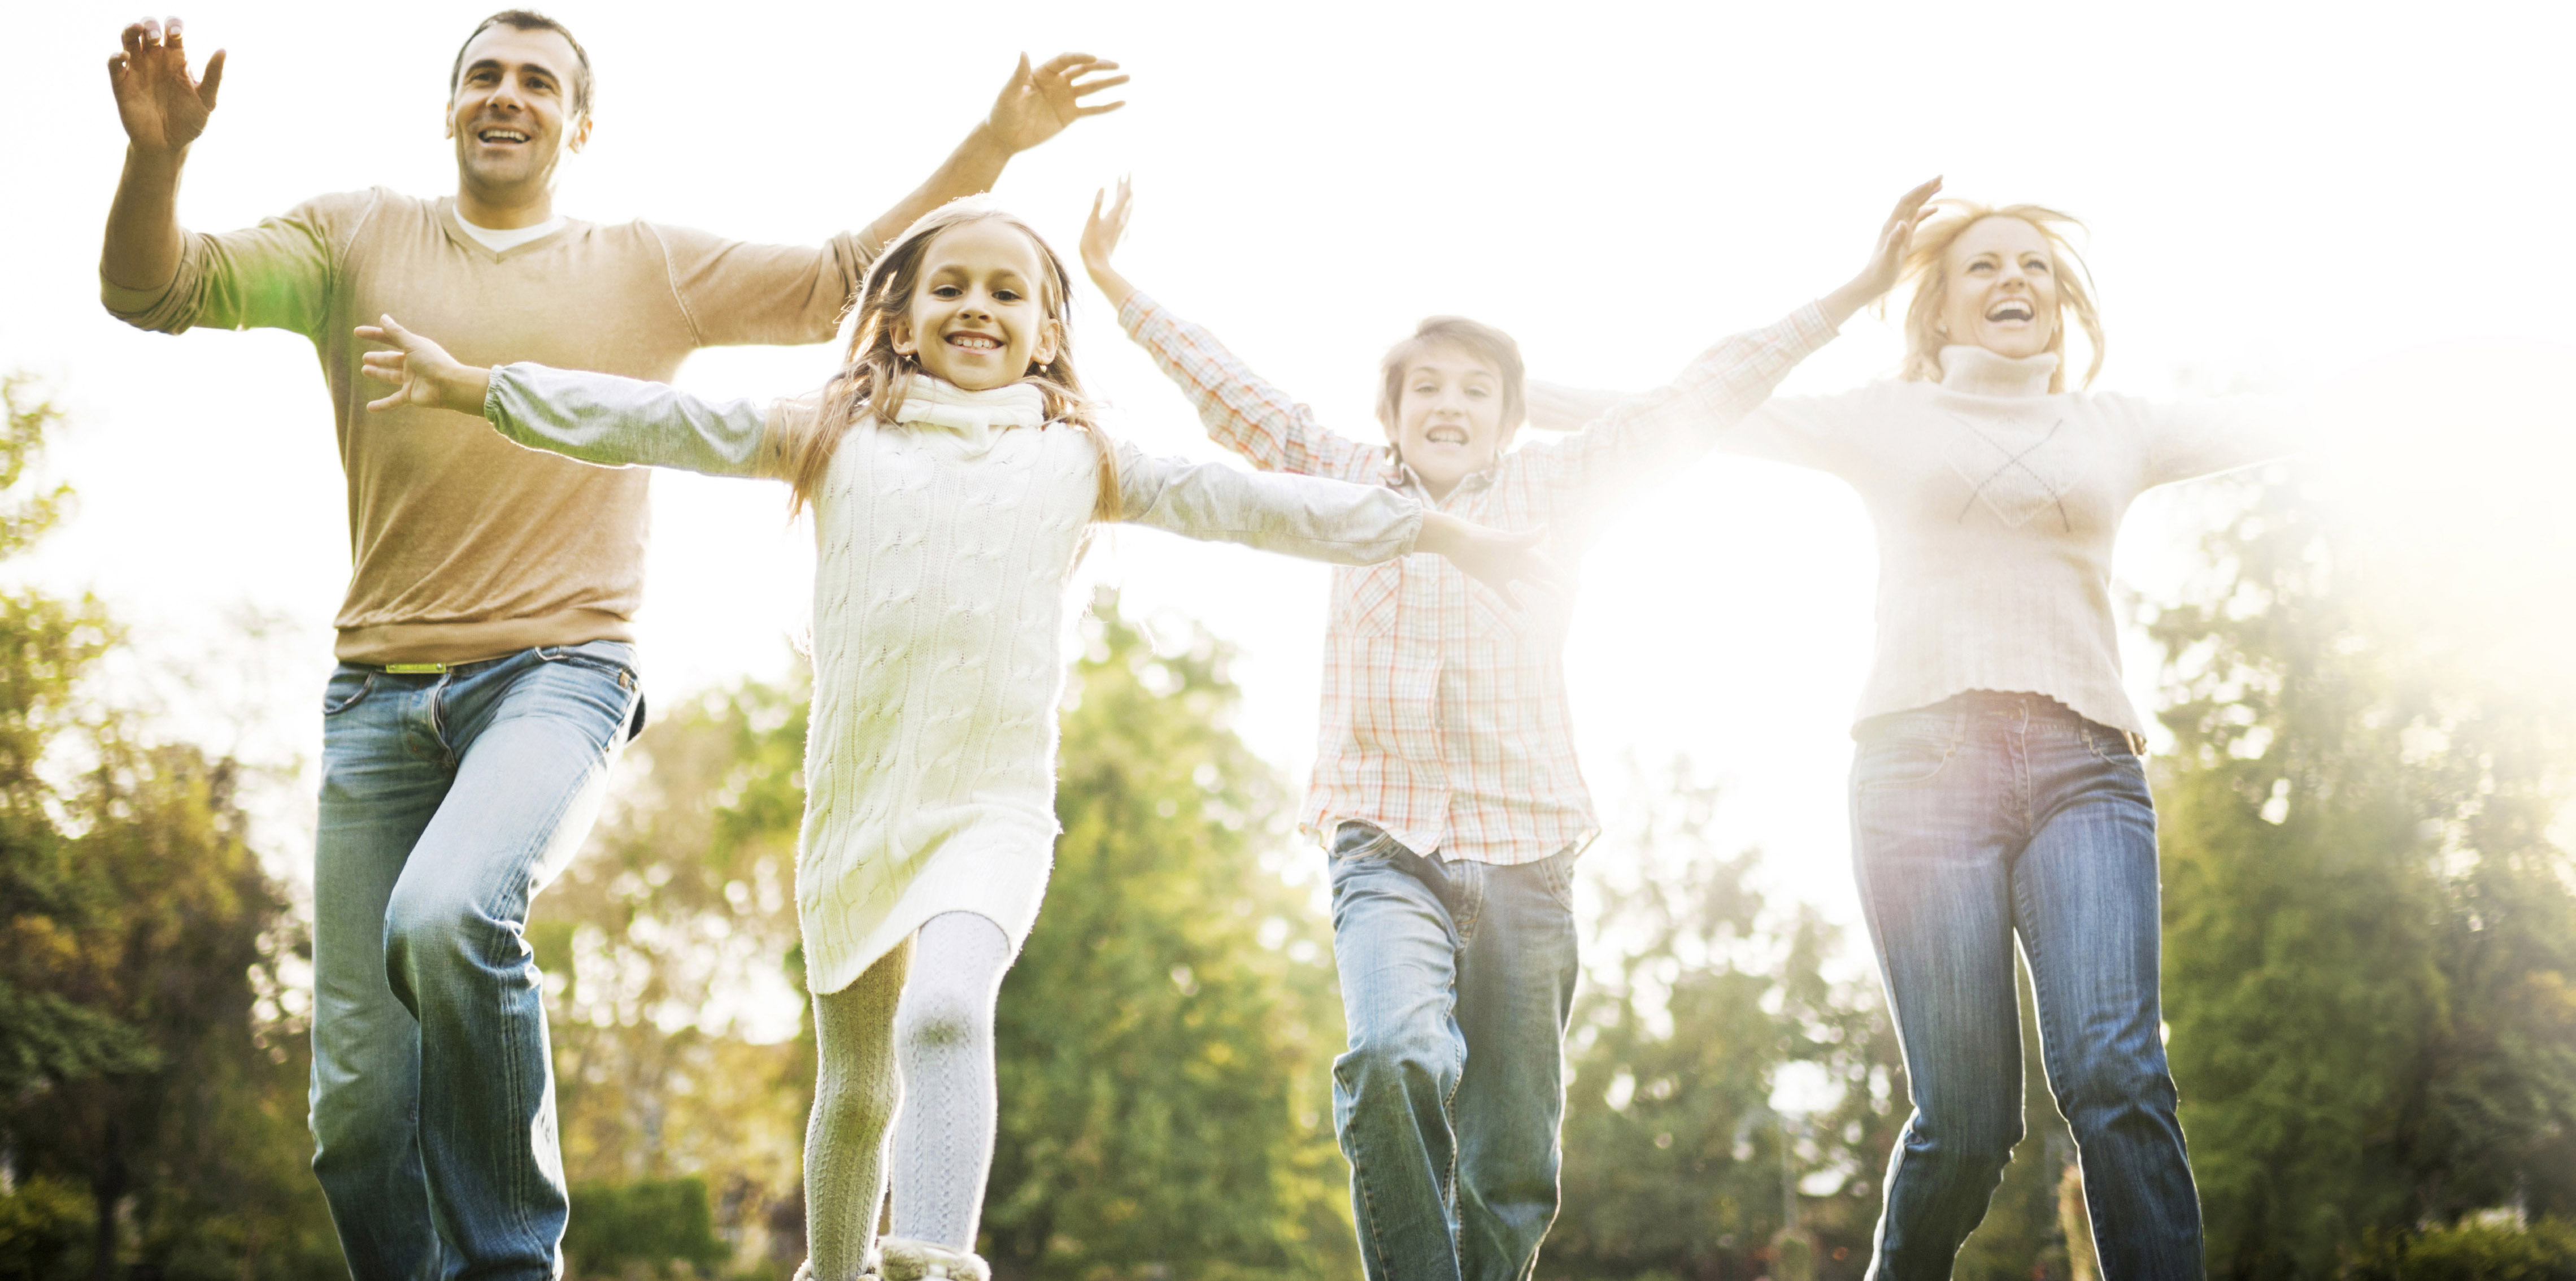 Low angle view of cheerful family having fun while running in the park.  [url=http://www.istockphoto.com/search/lightbox/9786778][img]http://dl.dropbox.com/u/40117171/family.jpg[/img][/url]